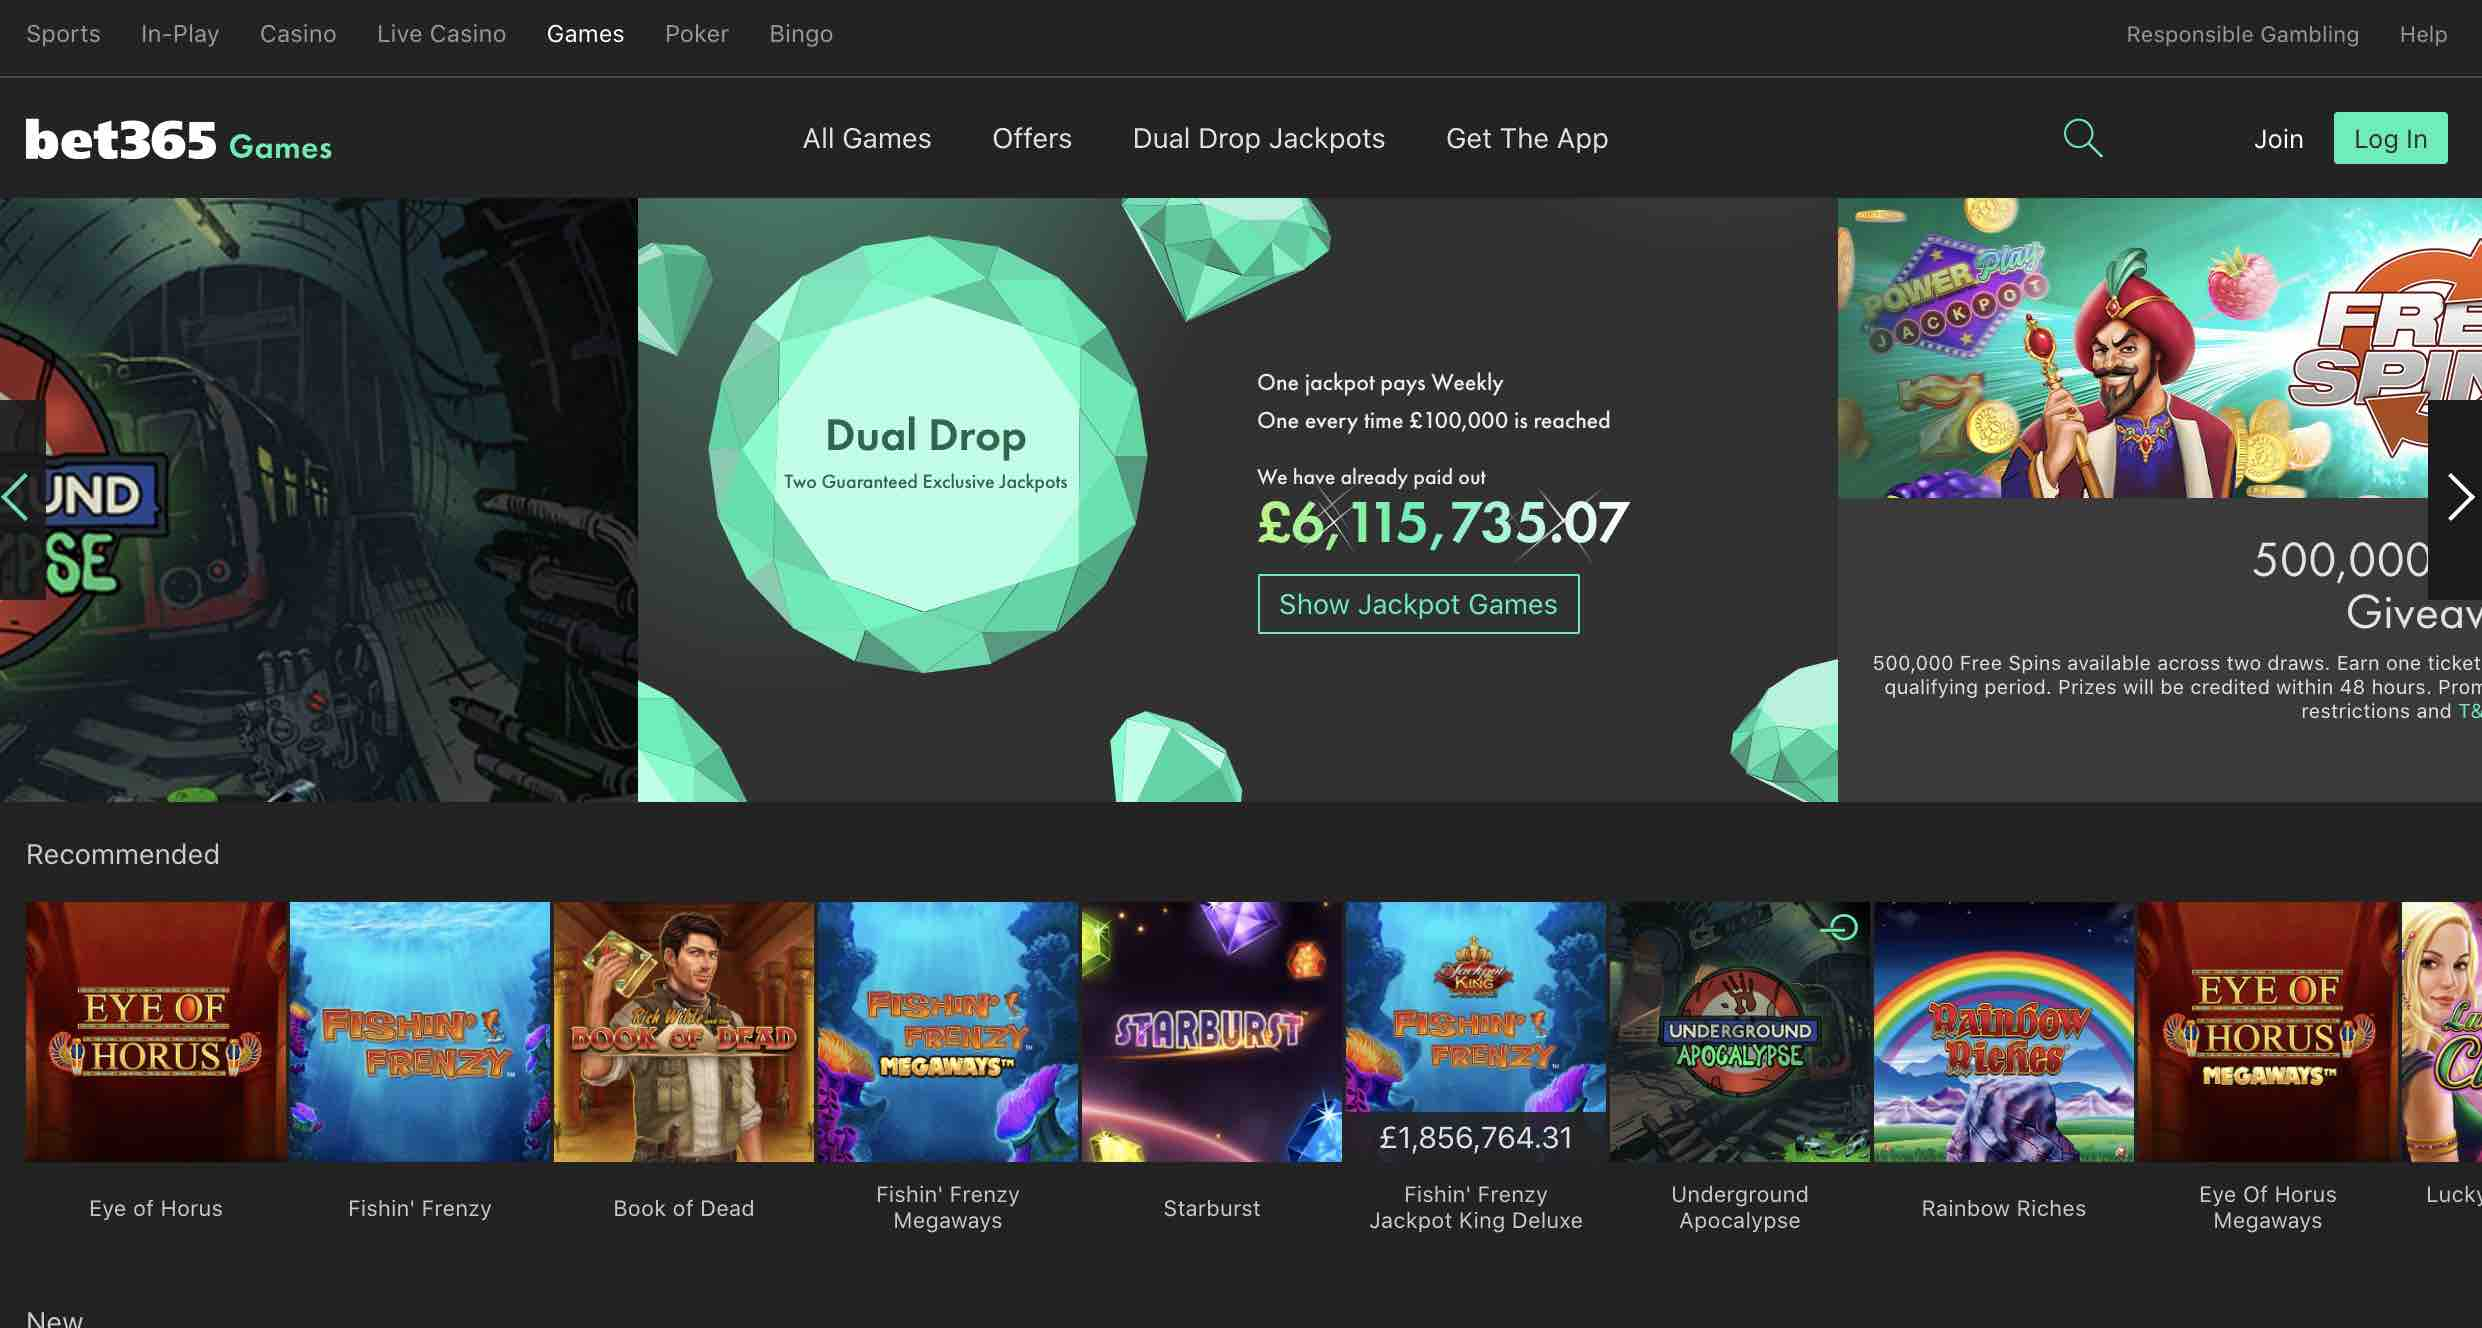 Best Games at bet365 Casino